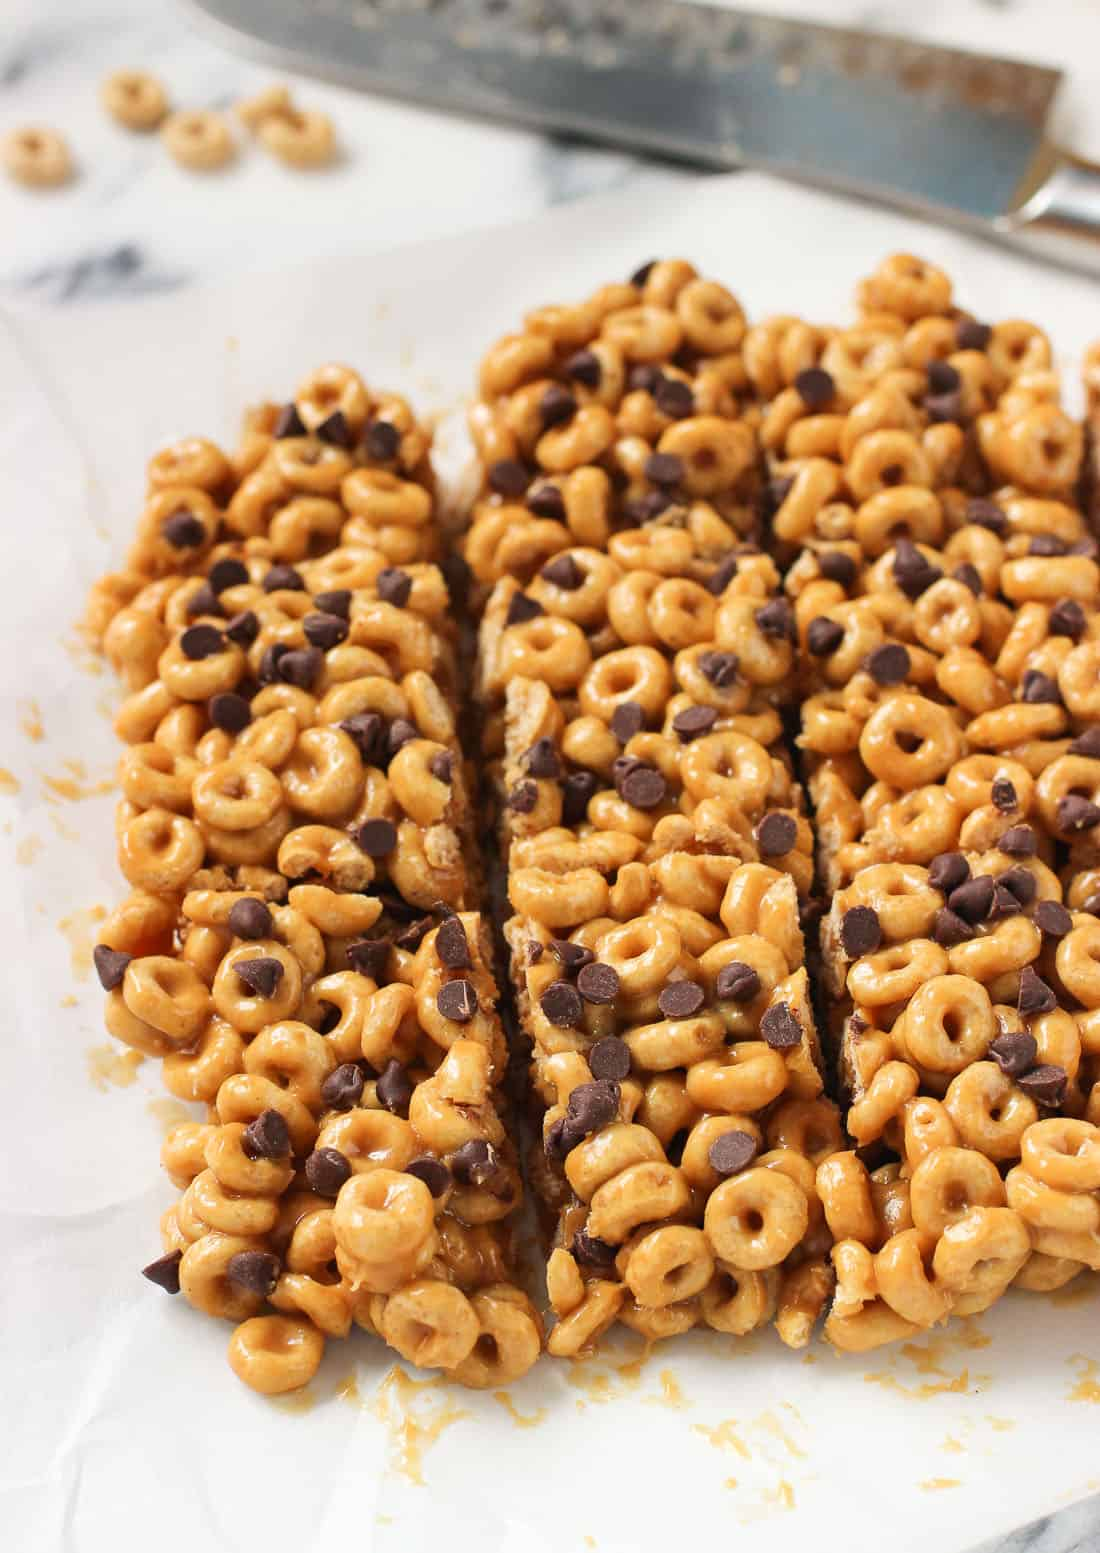 A slab of sliced cereal bars on a piece of parchment paper with a knife in the background